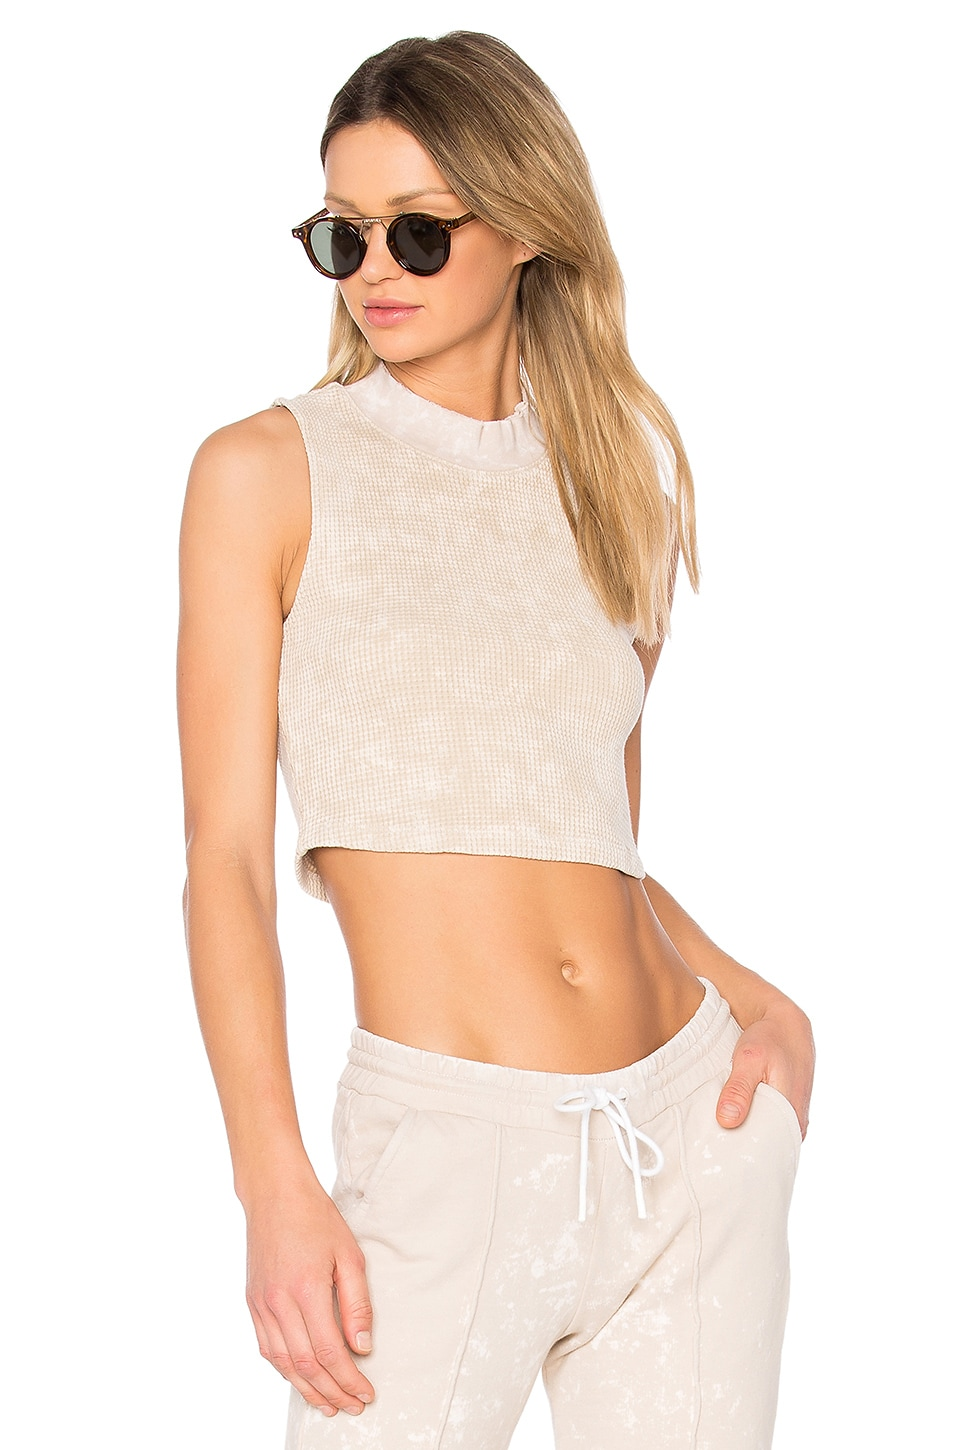 COTTON CITIZEN The Monaco Crop Tank in Sand Dust